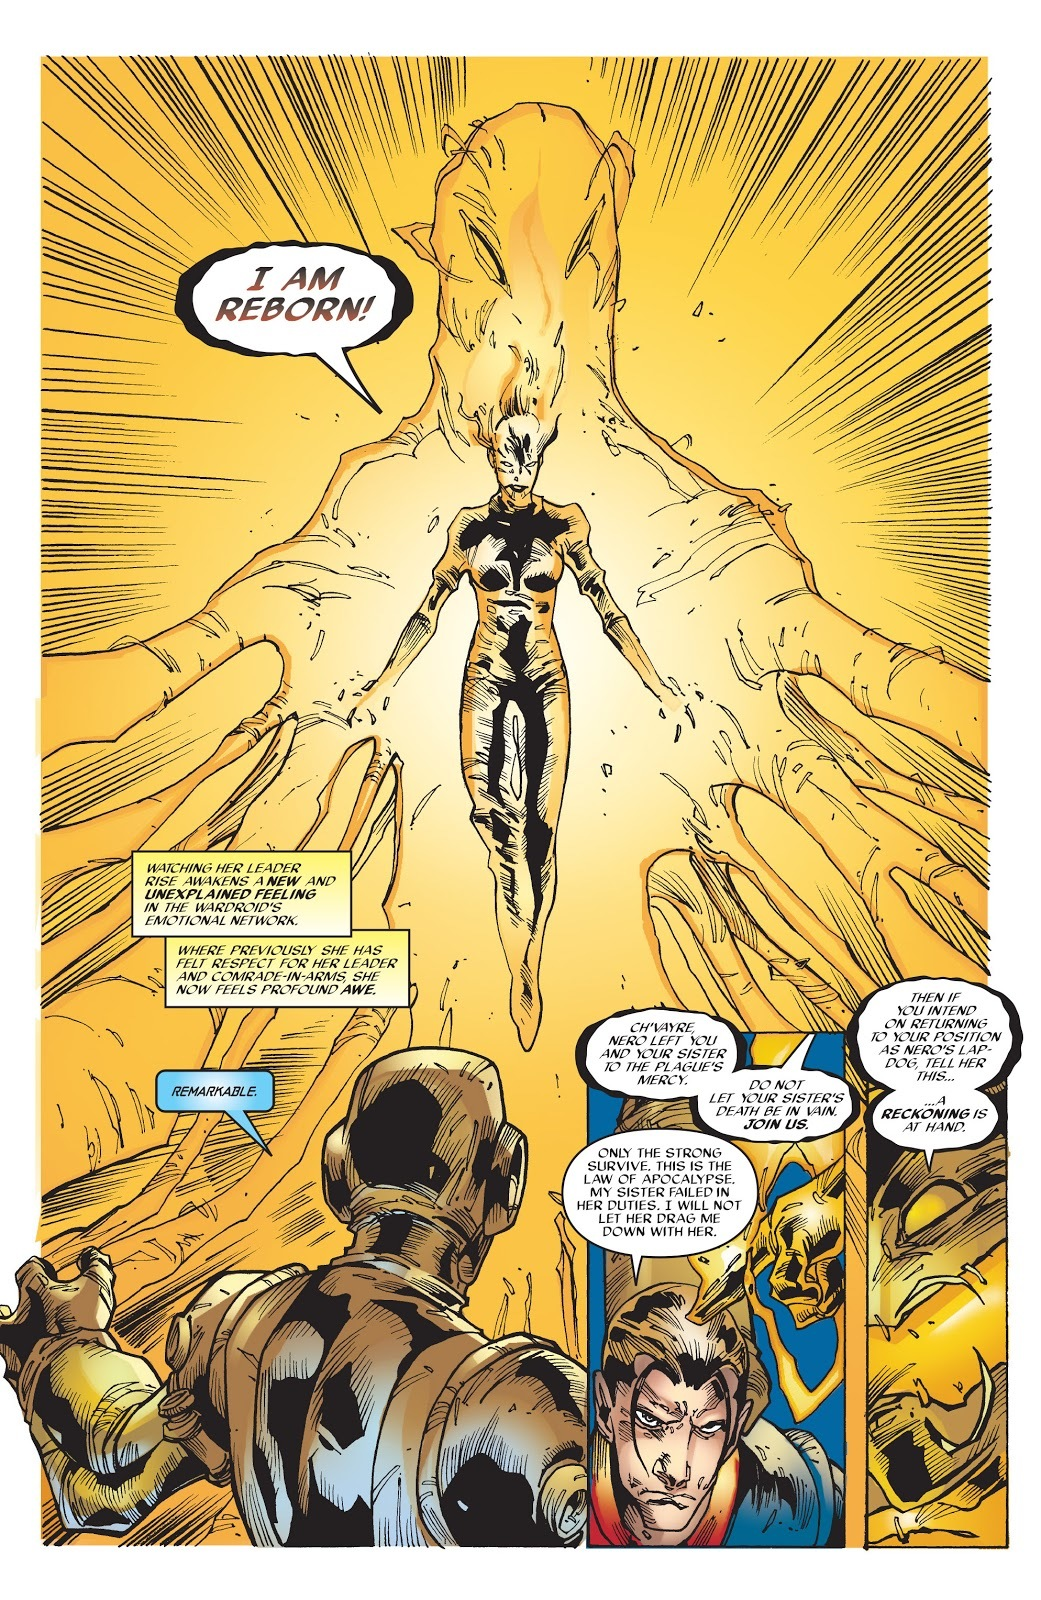 After being overwhelmed by poison, uses the Phoenix's power to resurrect herself - X-Men Phoenix v1 #3